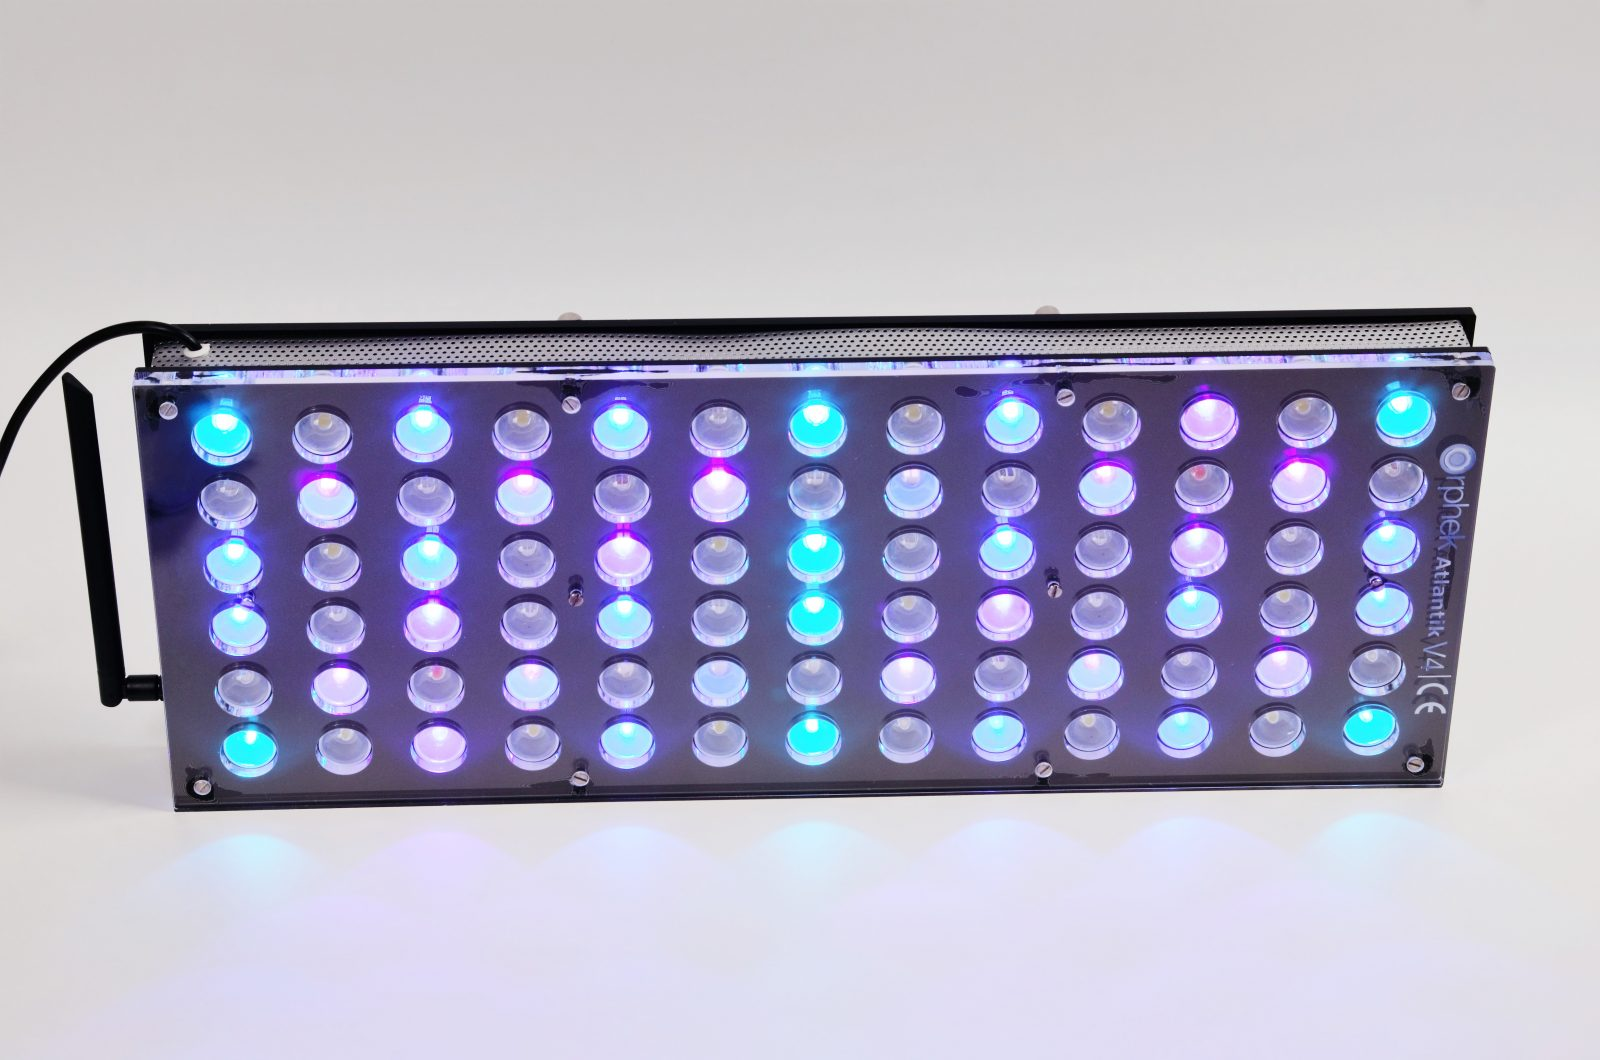 Orphek-Aquarium-LED-Lighting-Reef-Atlantik-V4-light-on-channel 2 + 3